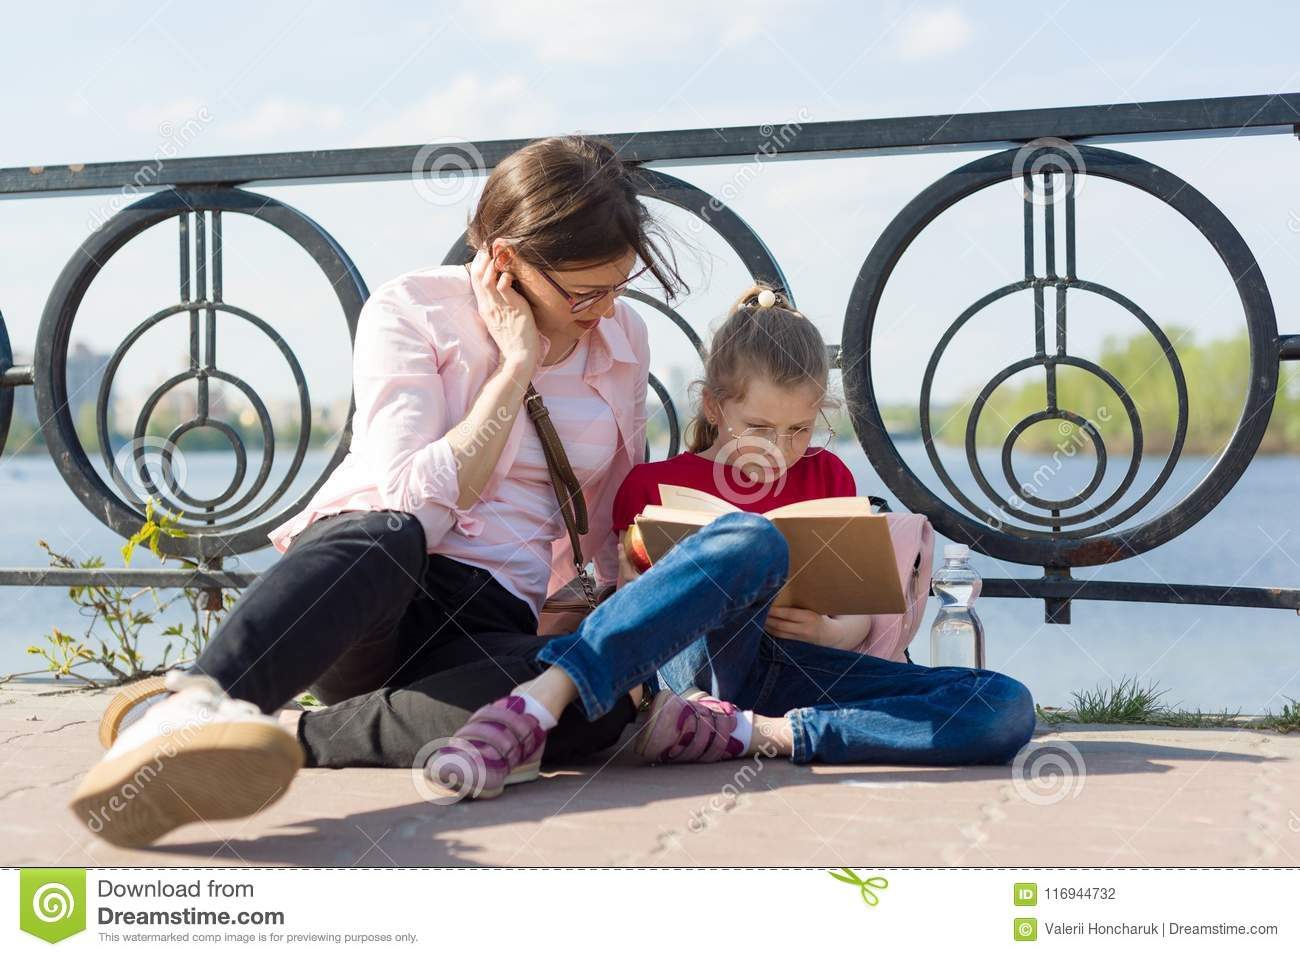 Girl and mother reading the book. Urban background, river, sky